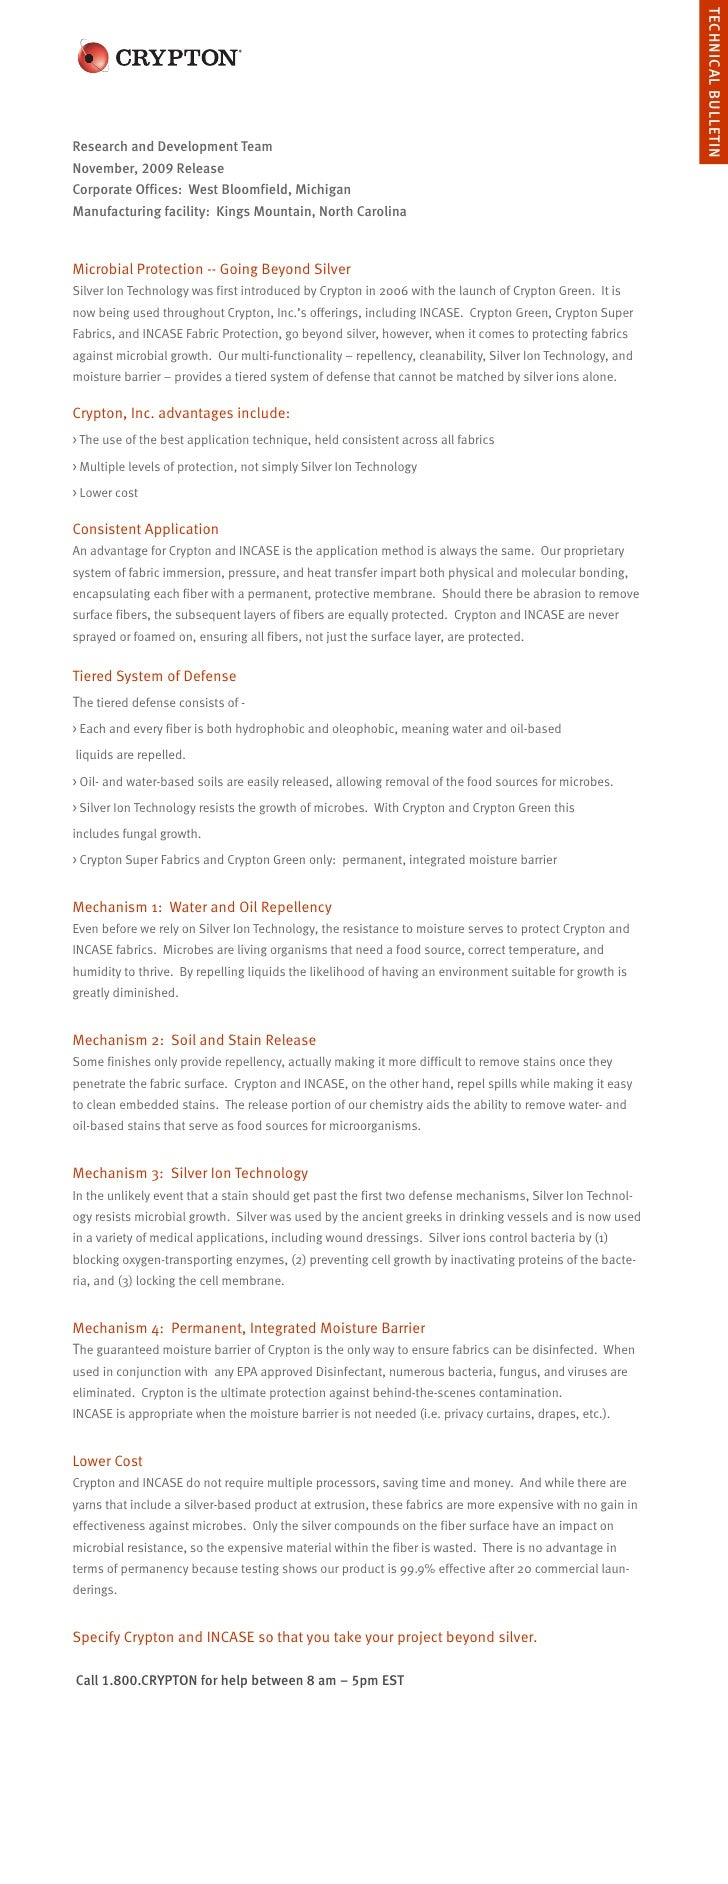 TECHNICAL BULLETIN Research and Development Team November, 2009 Release Corporate Offices: West Bloomfield, Michigan Manuf...